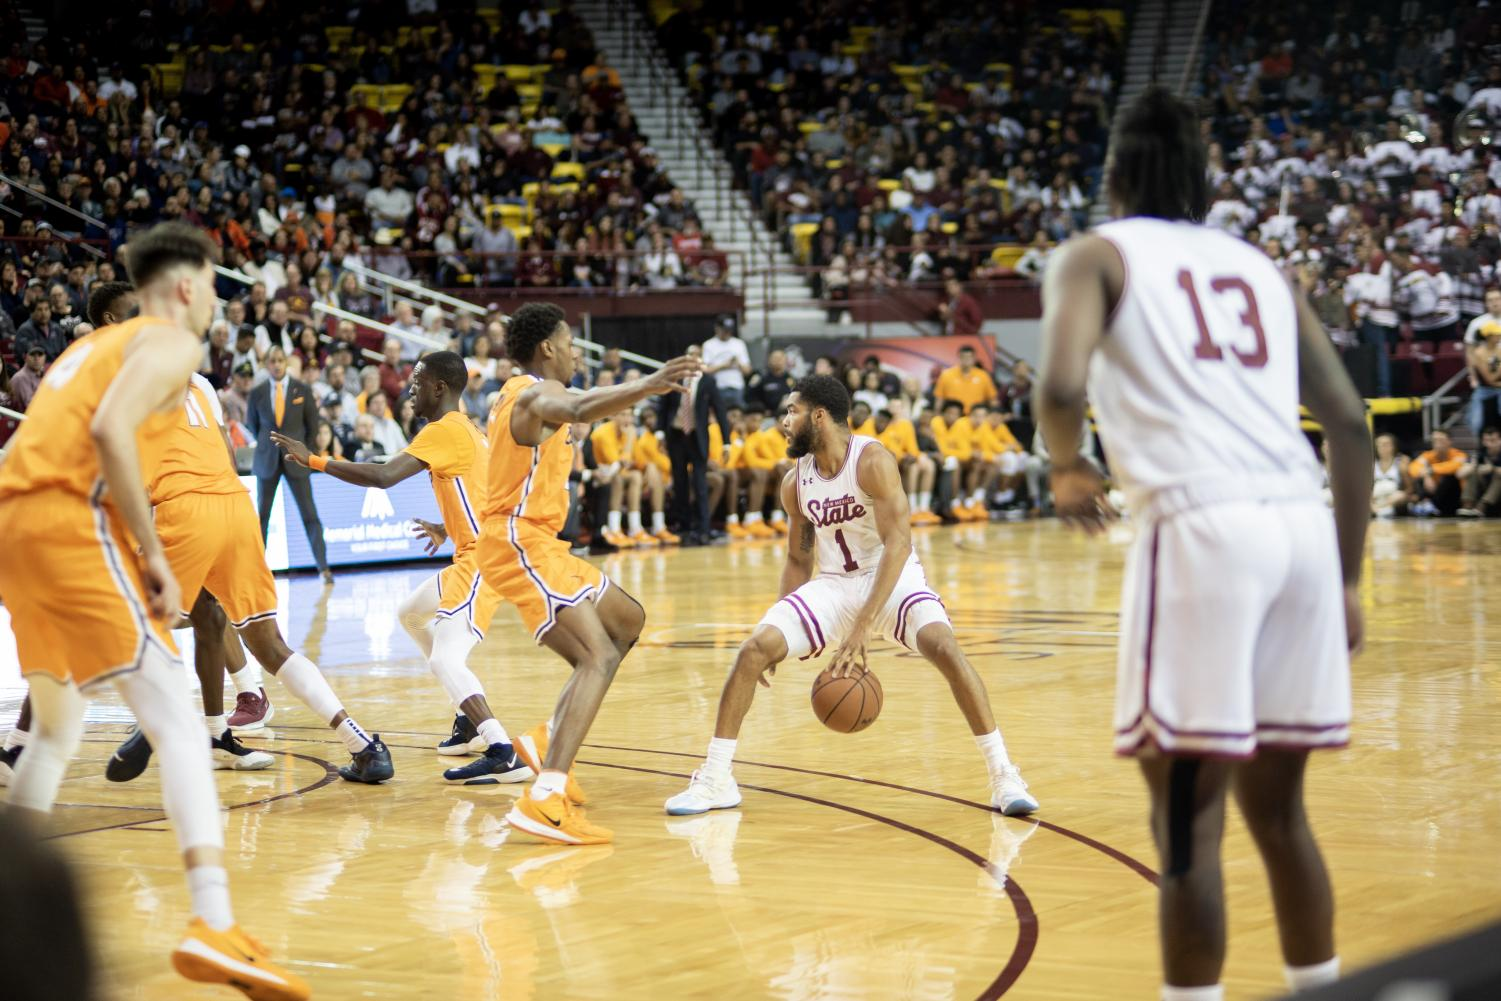 The Aggies hold off a persistent UTEP comeback effort to improve to 5-4 on the season.